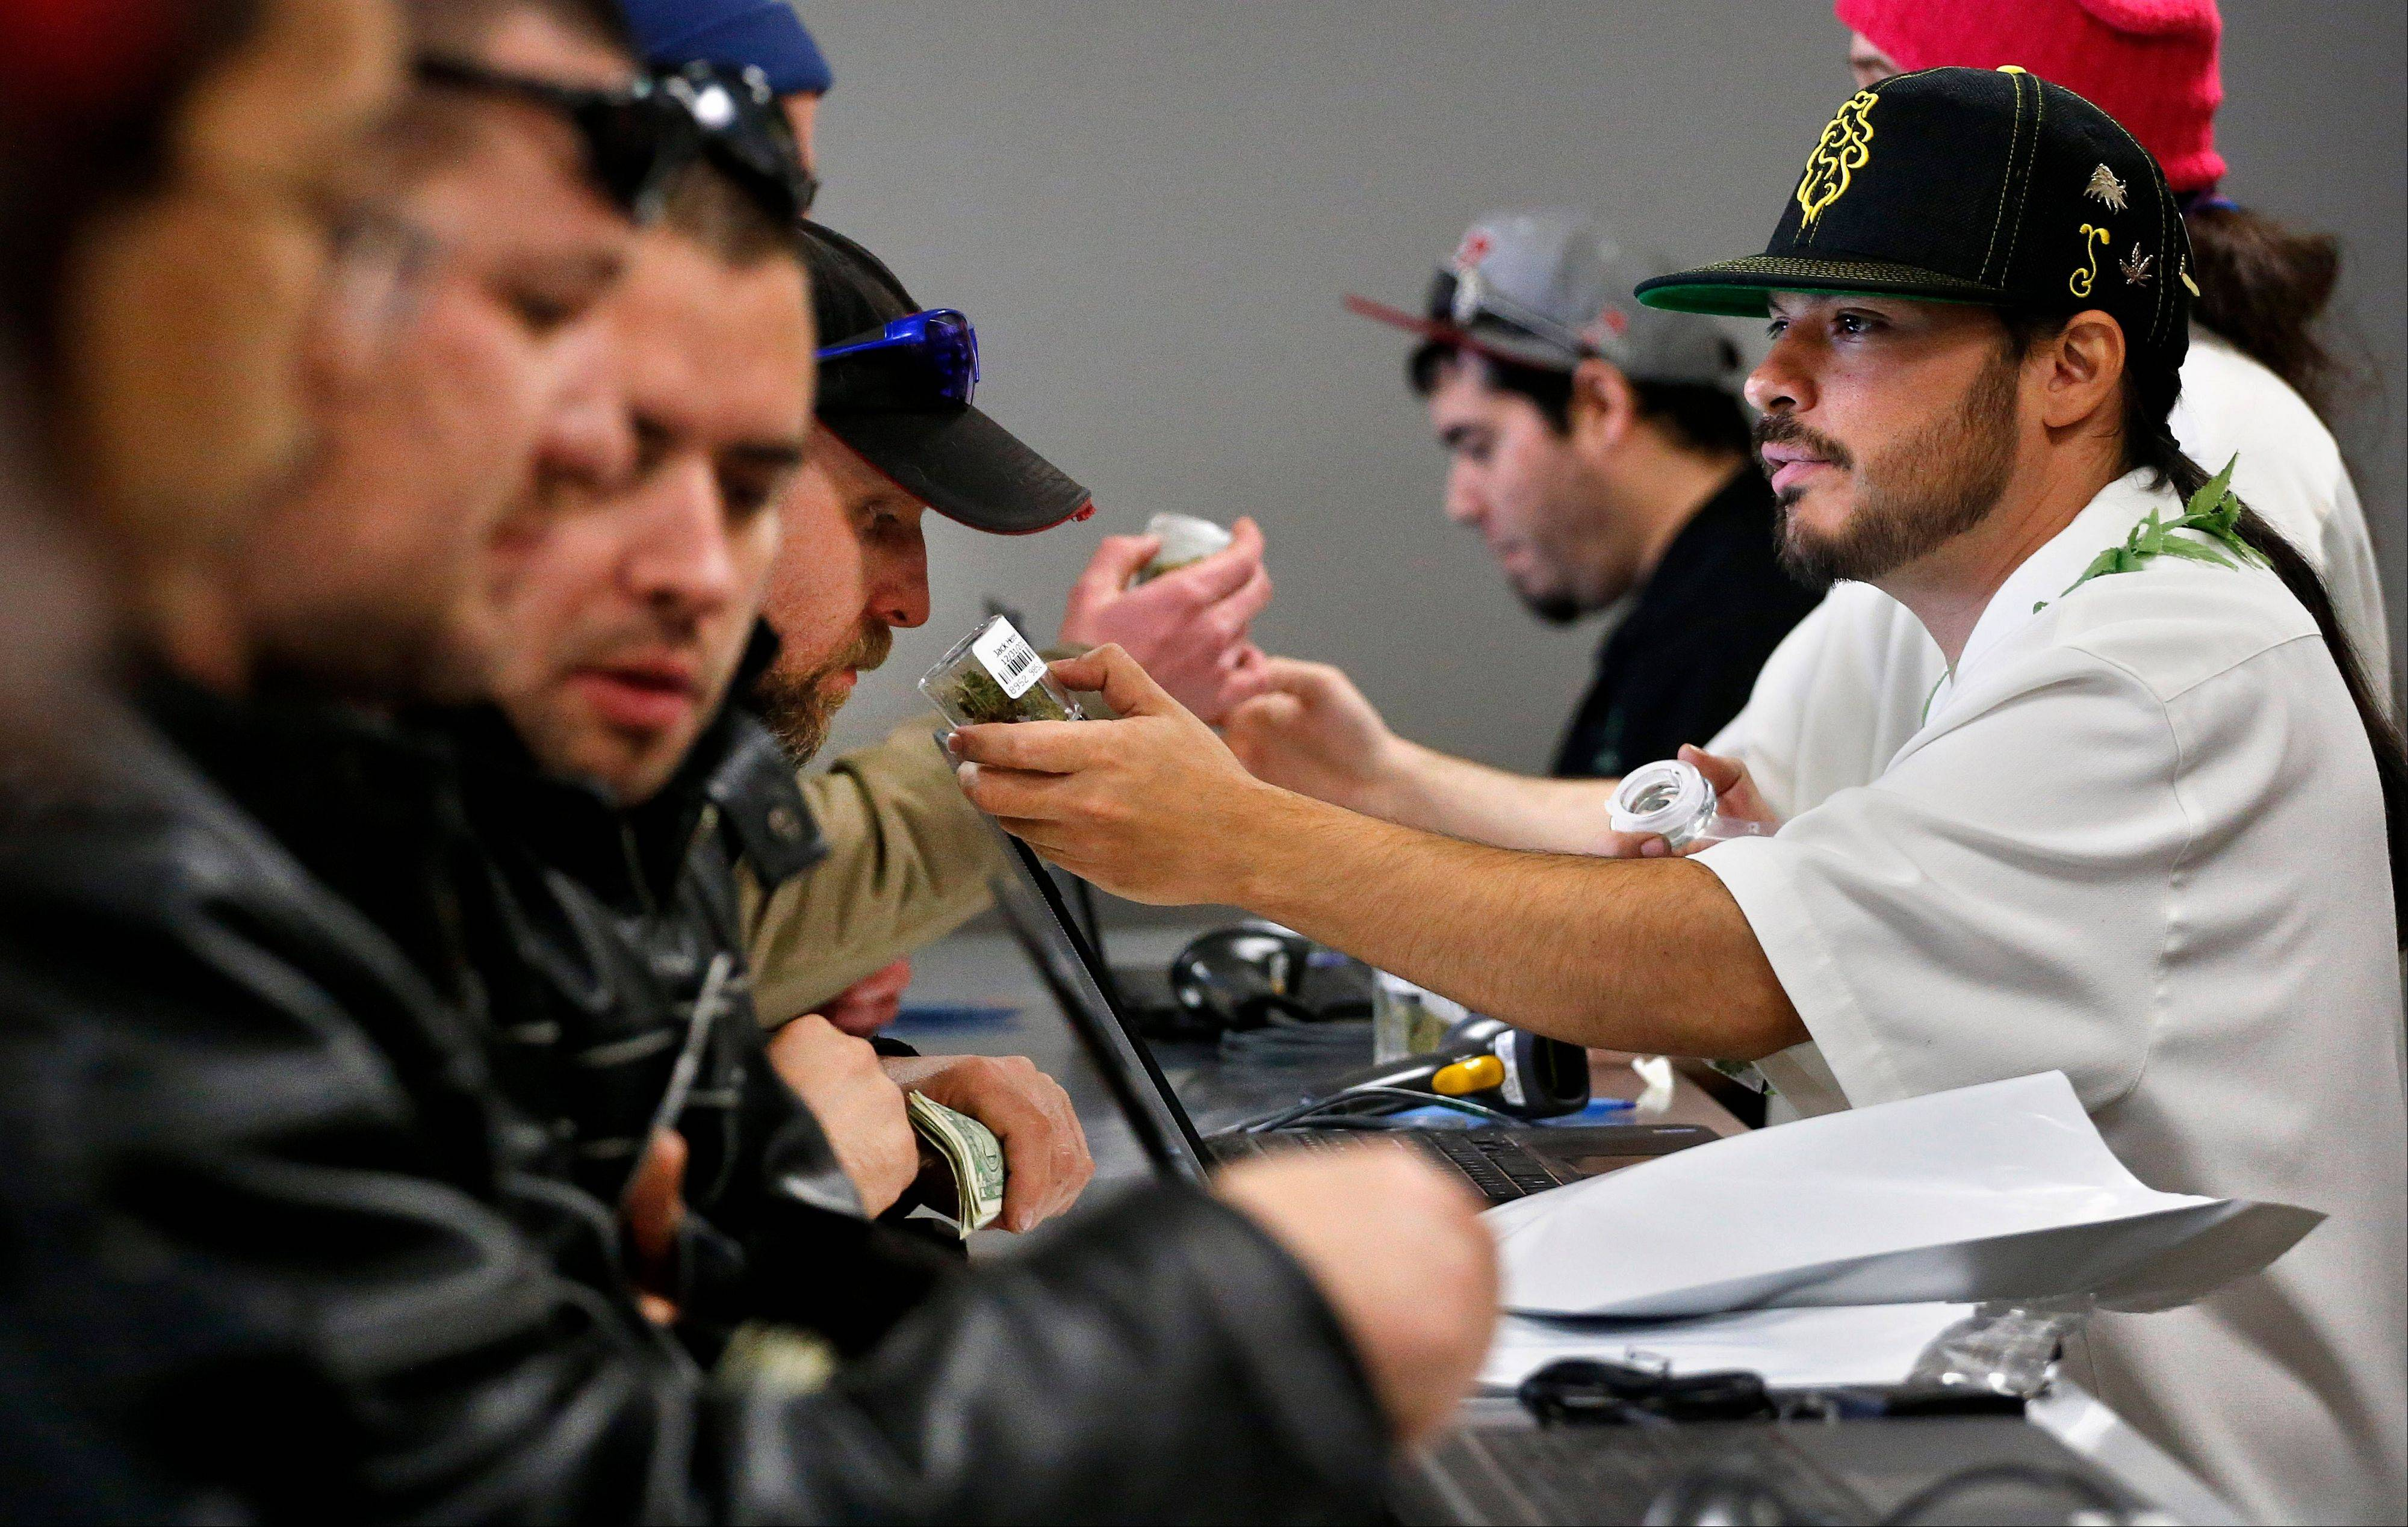 Employee David Marlow, right, helps a customer, who smells a strain of marijuana before buying it, at the crowded sales counter inside Medicine Man marijuana retail store, which opened as a legal recreational retail outlet in Denver on Wednesday, a day some are calling �Green Wednesday.�